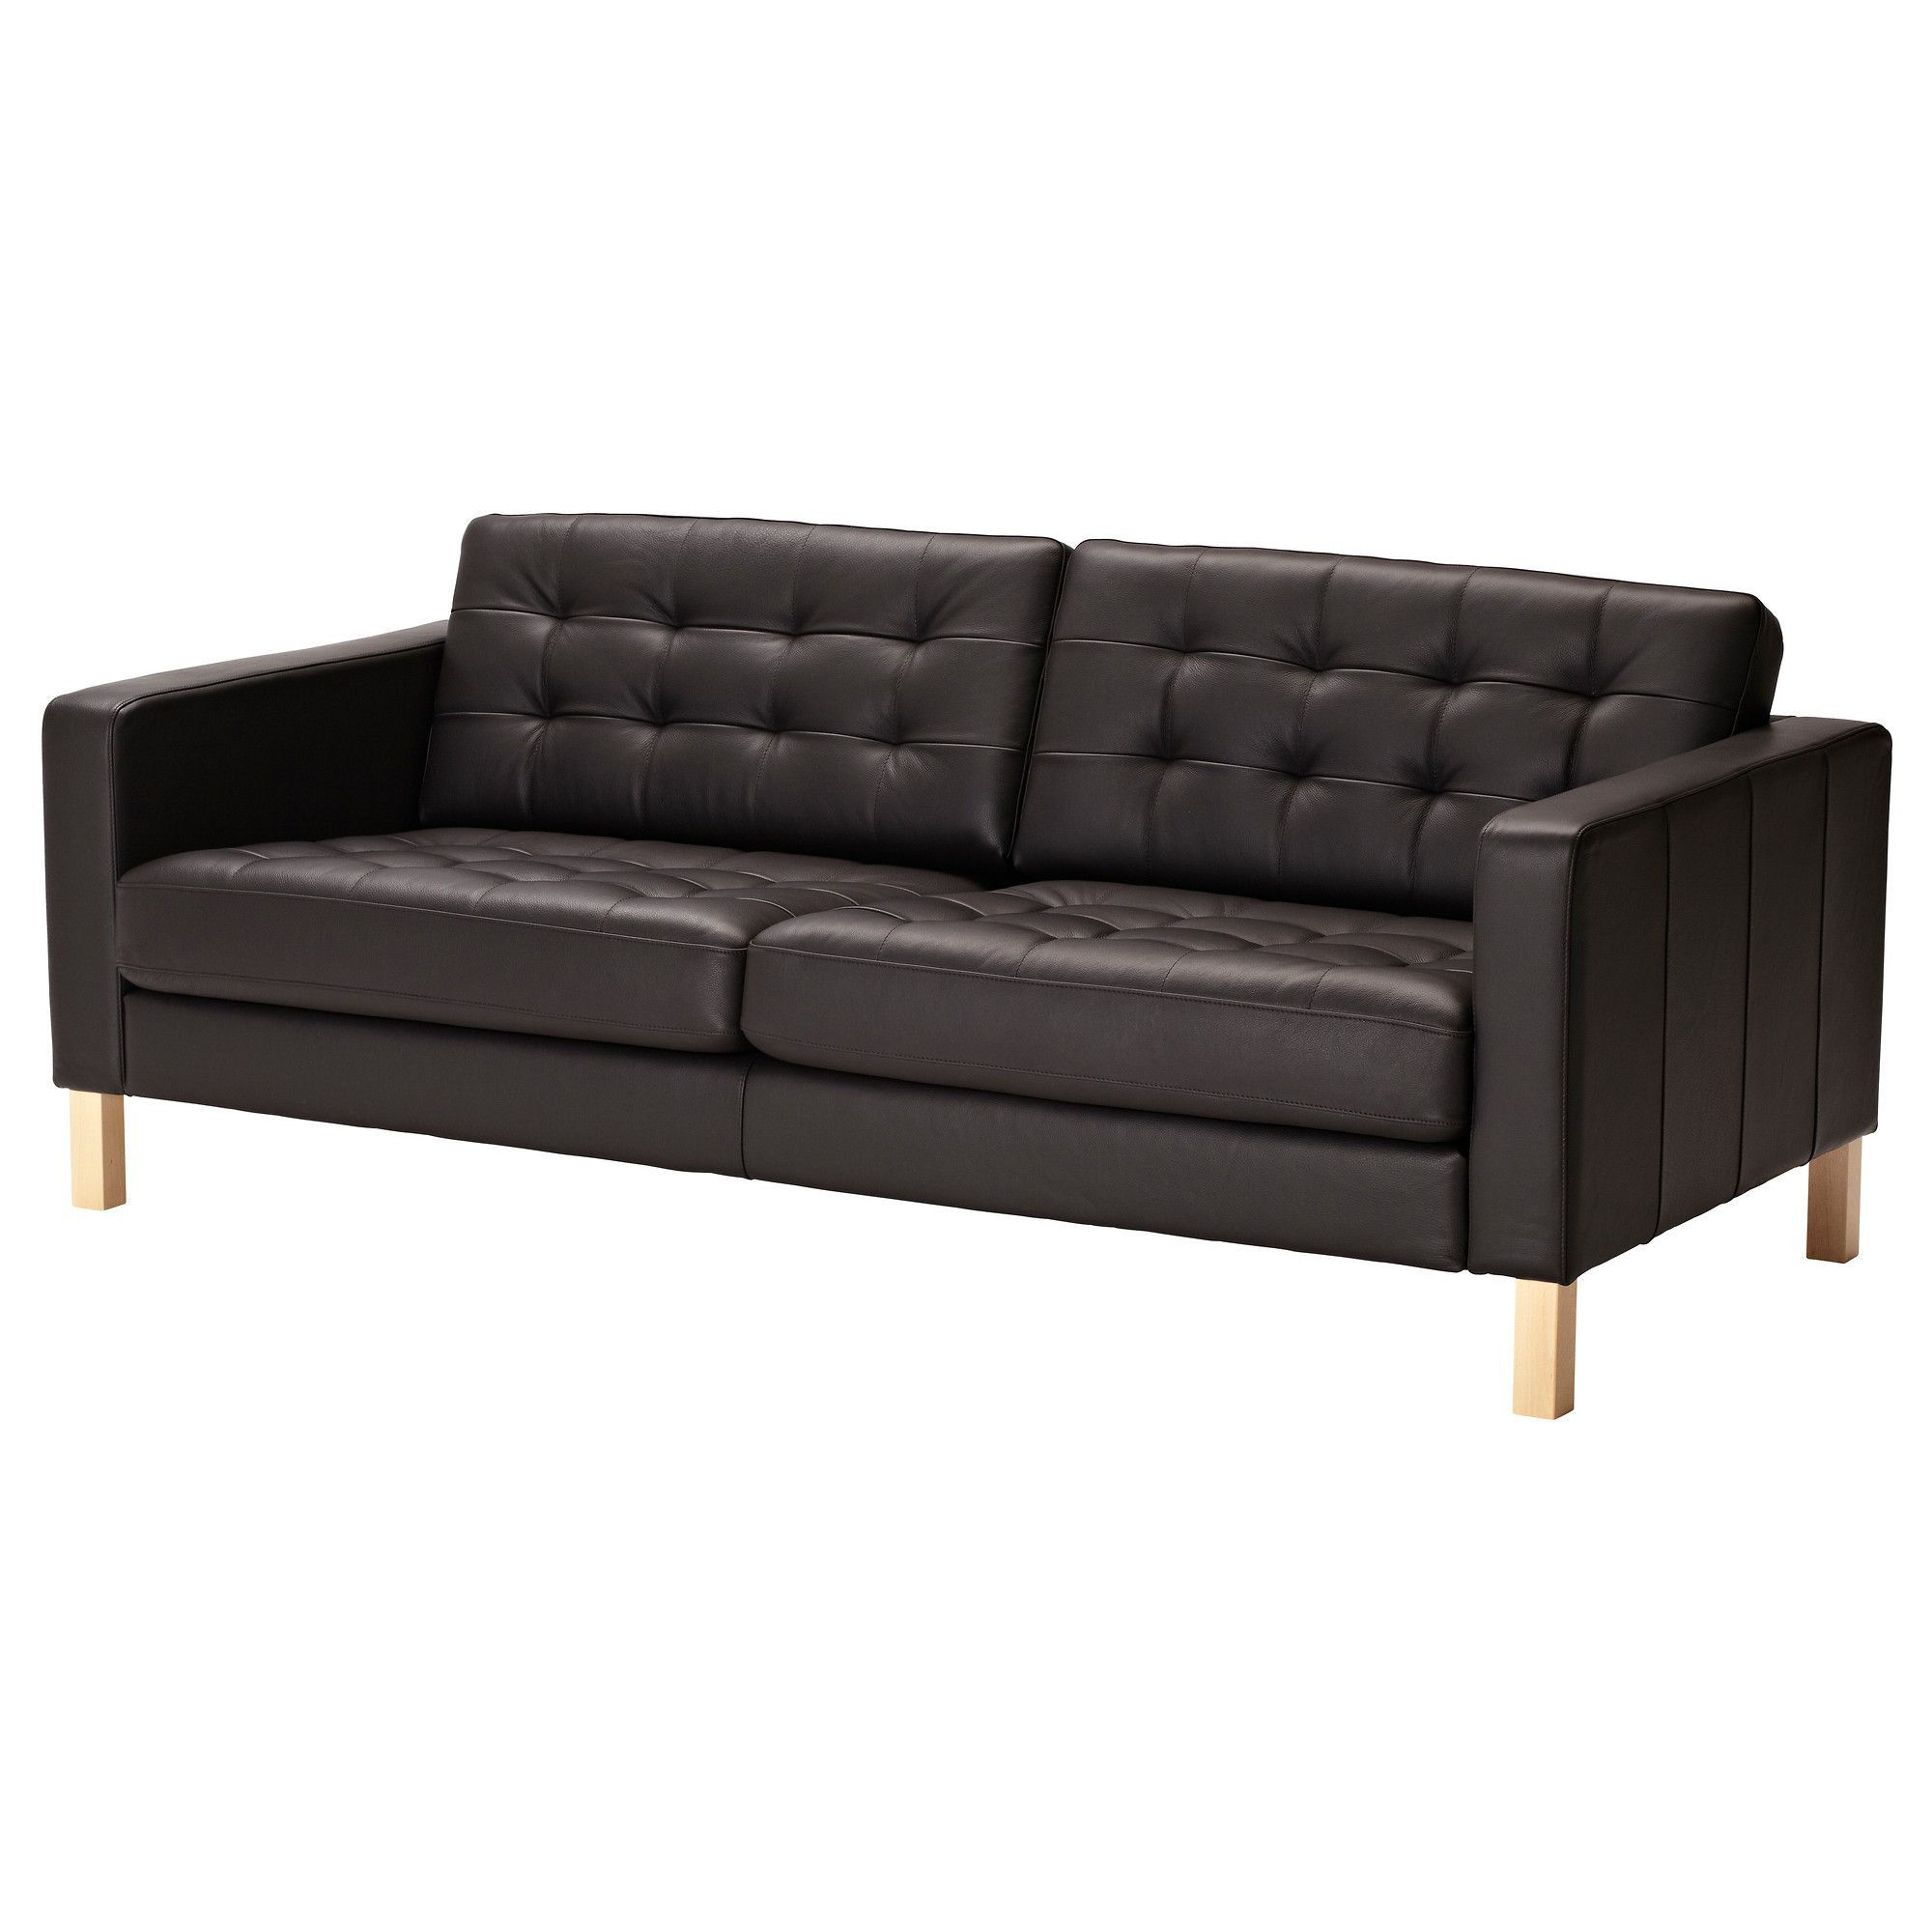 Rp Sofa Dimensions Best Made Sofas Uk Karlstad Measurements Sectional